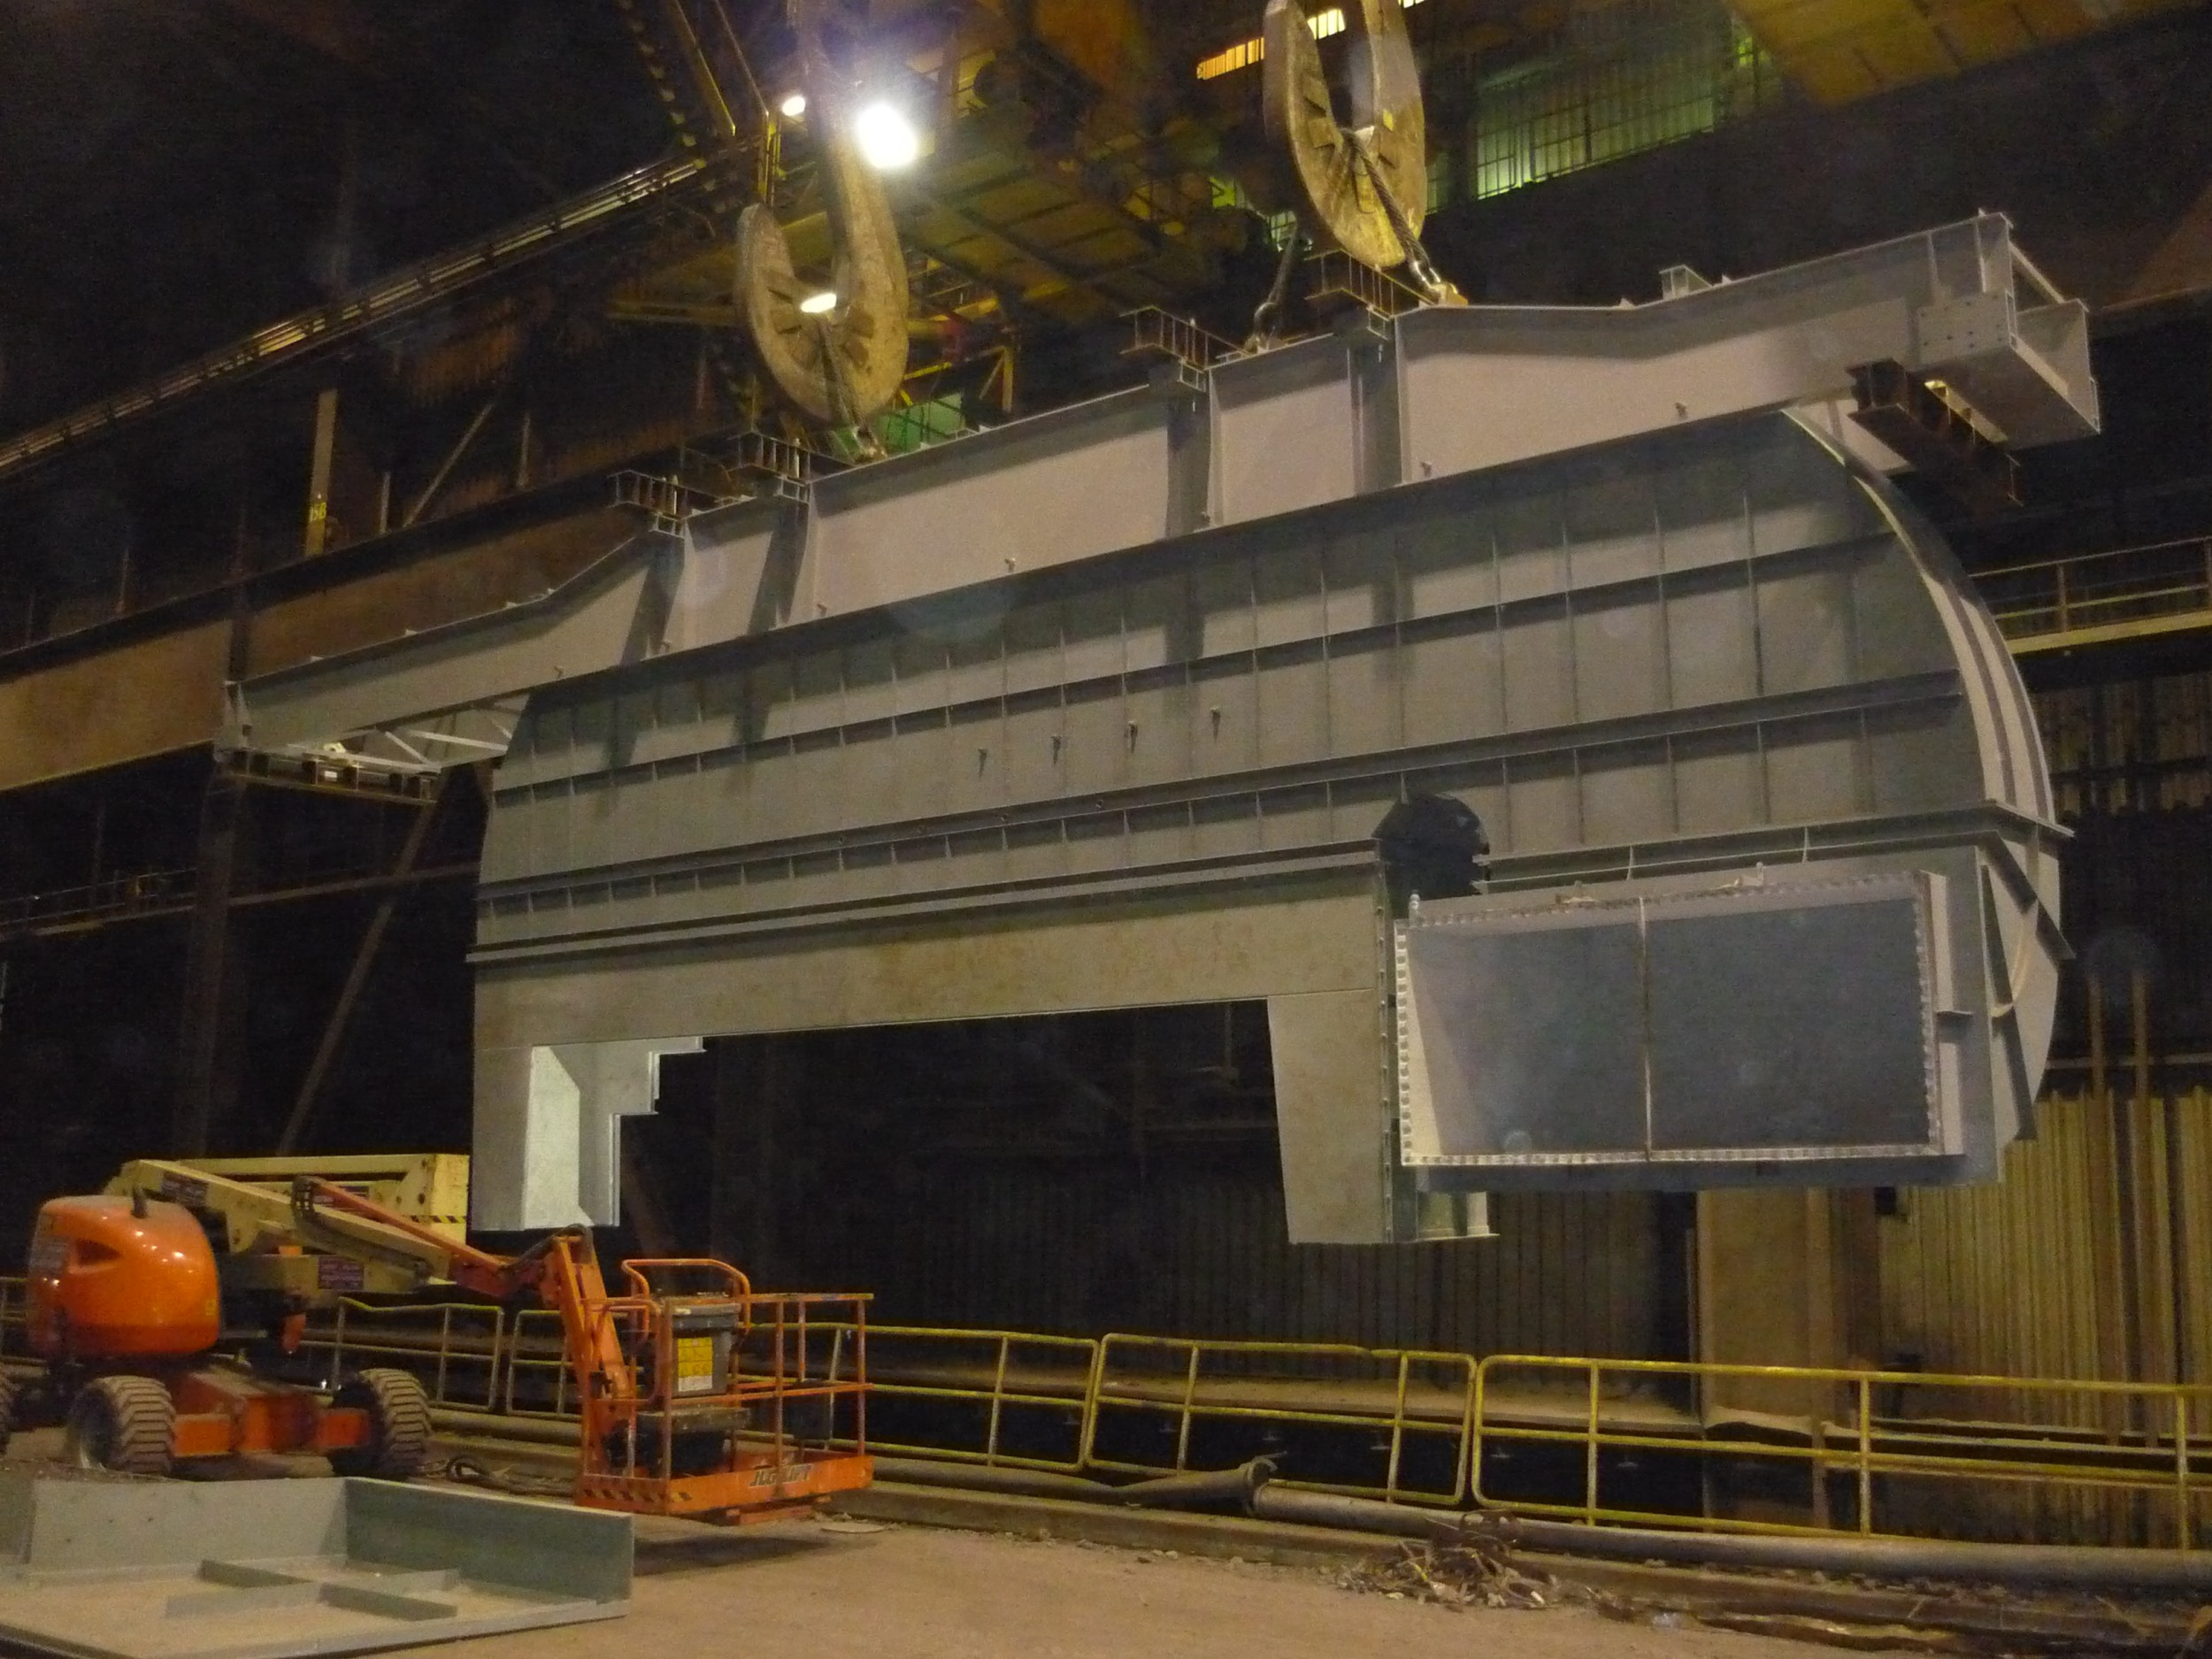 Montage Absaughaube / installation of the exhaust hood